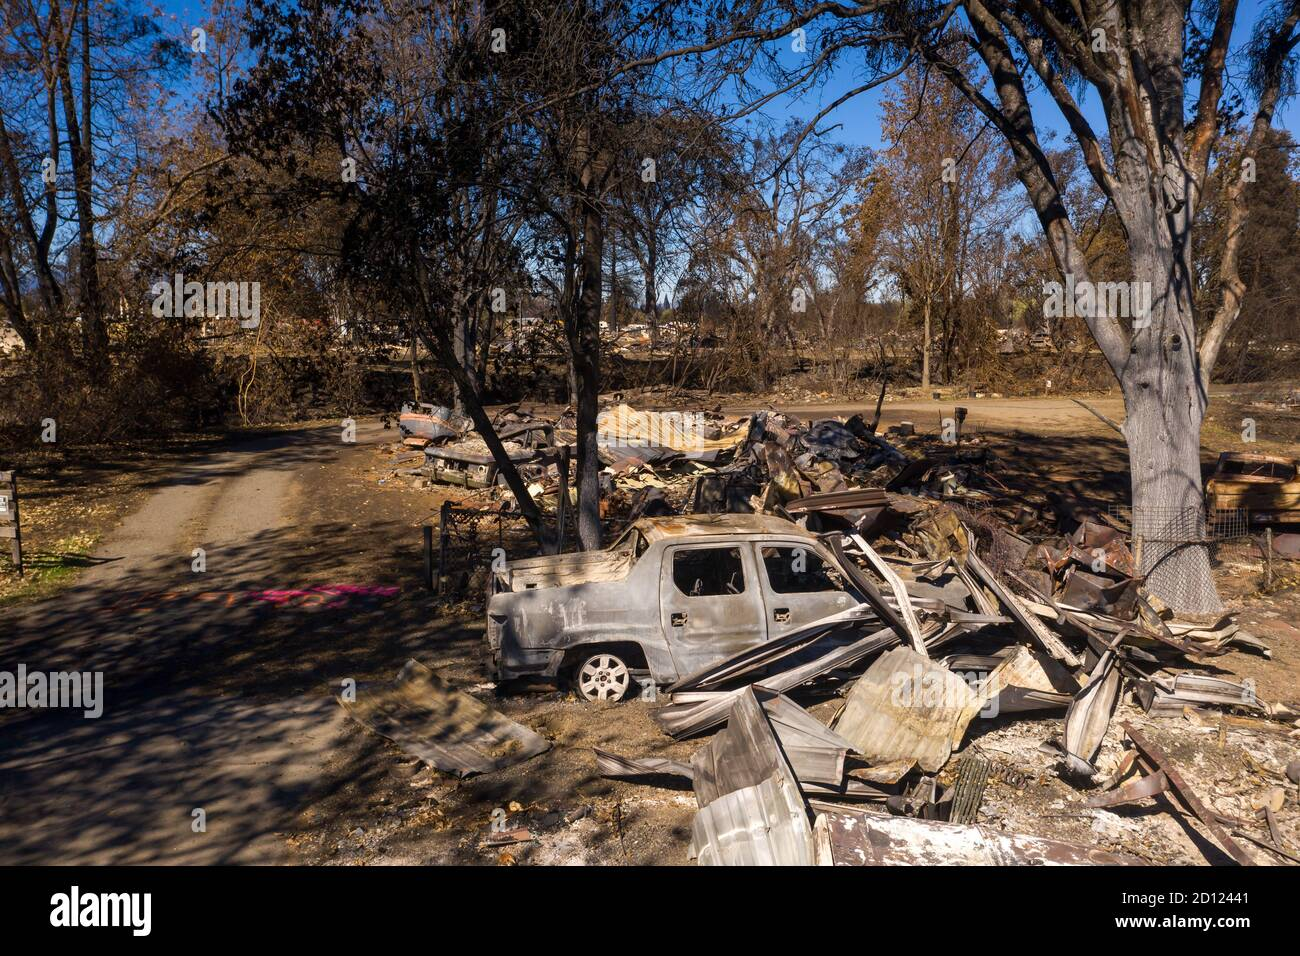 Burned homes and cars caused by Southern Oregon Almeda Fire, closeup Stock Photo